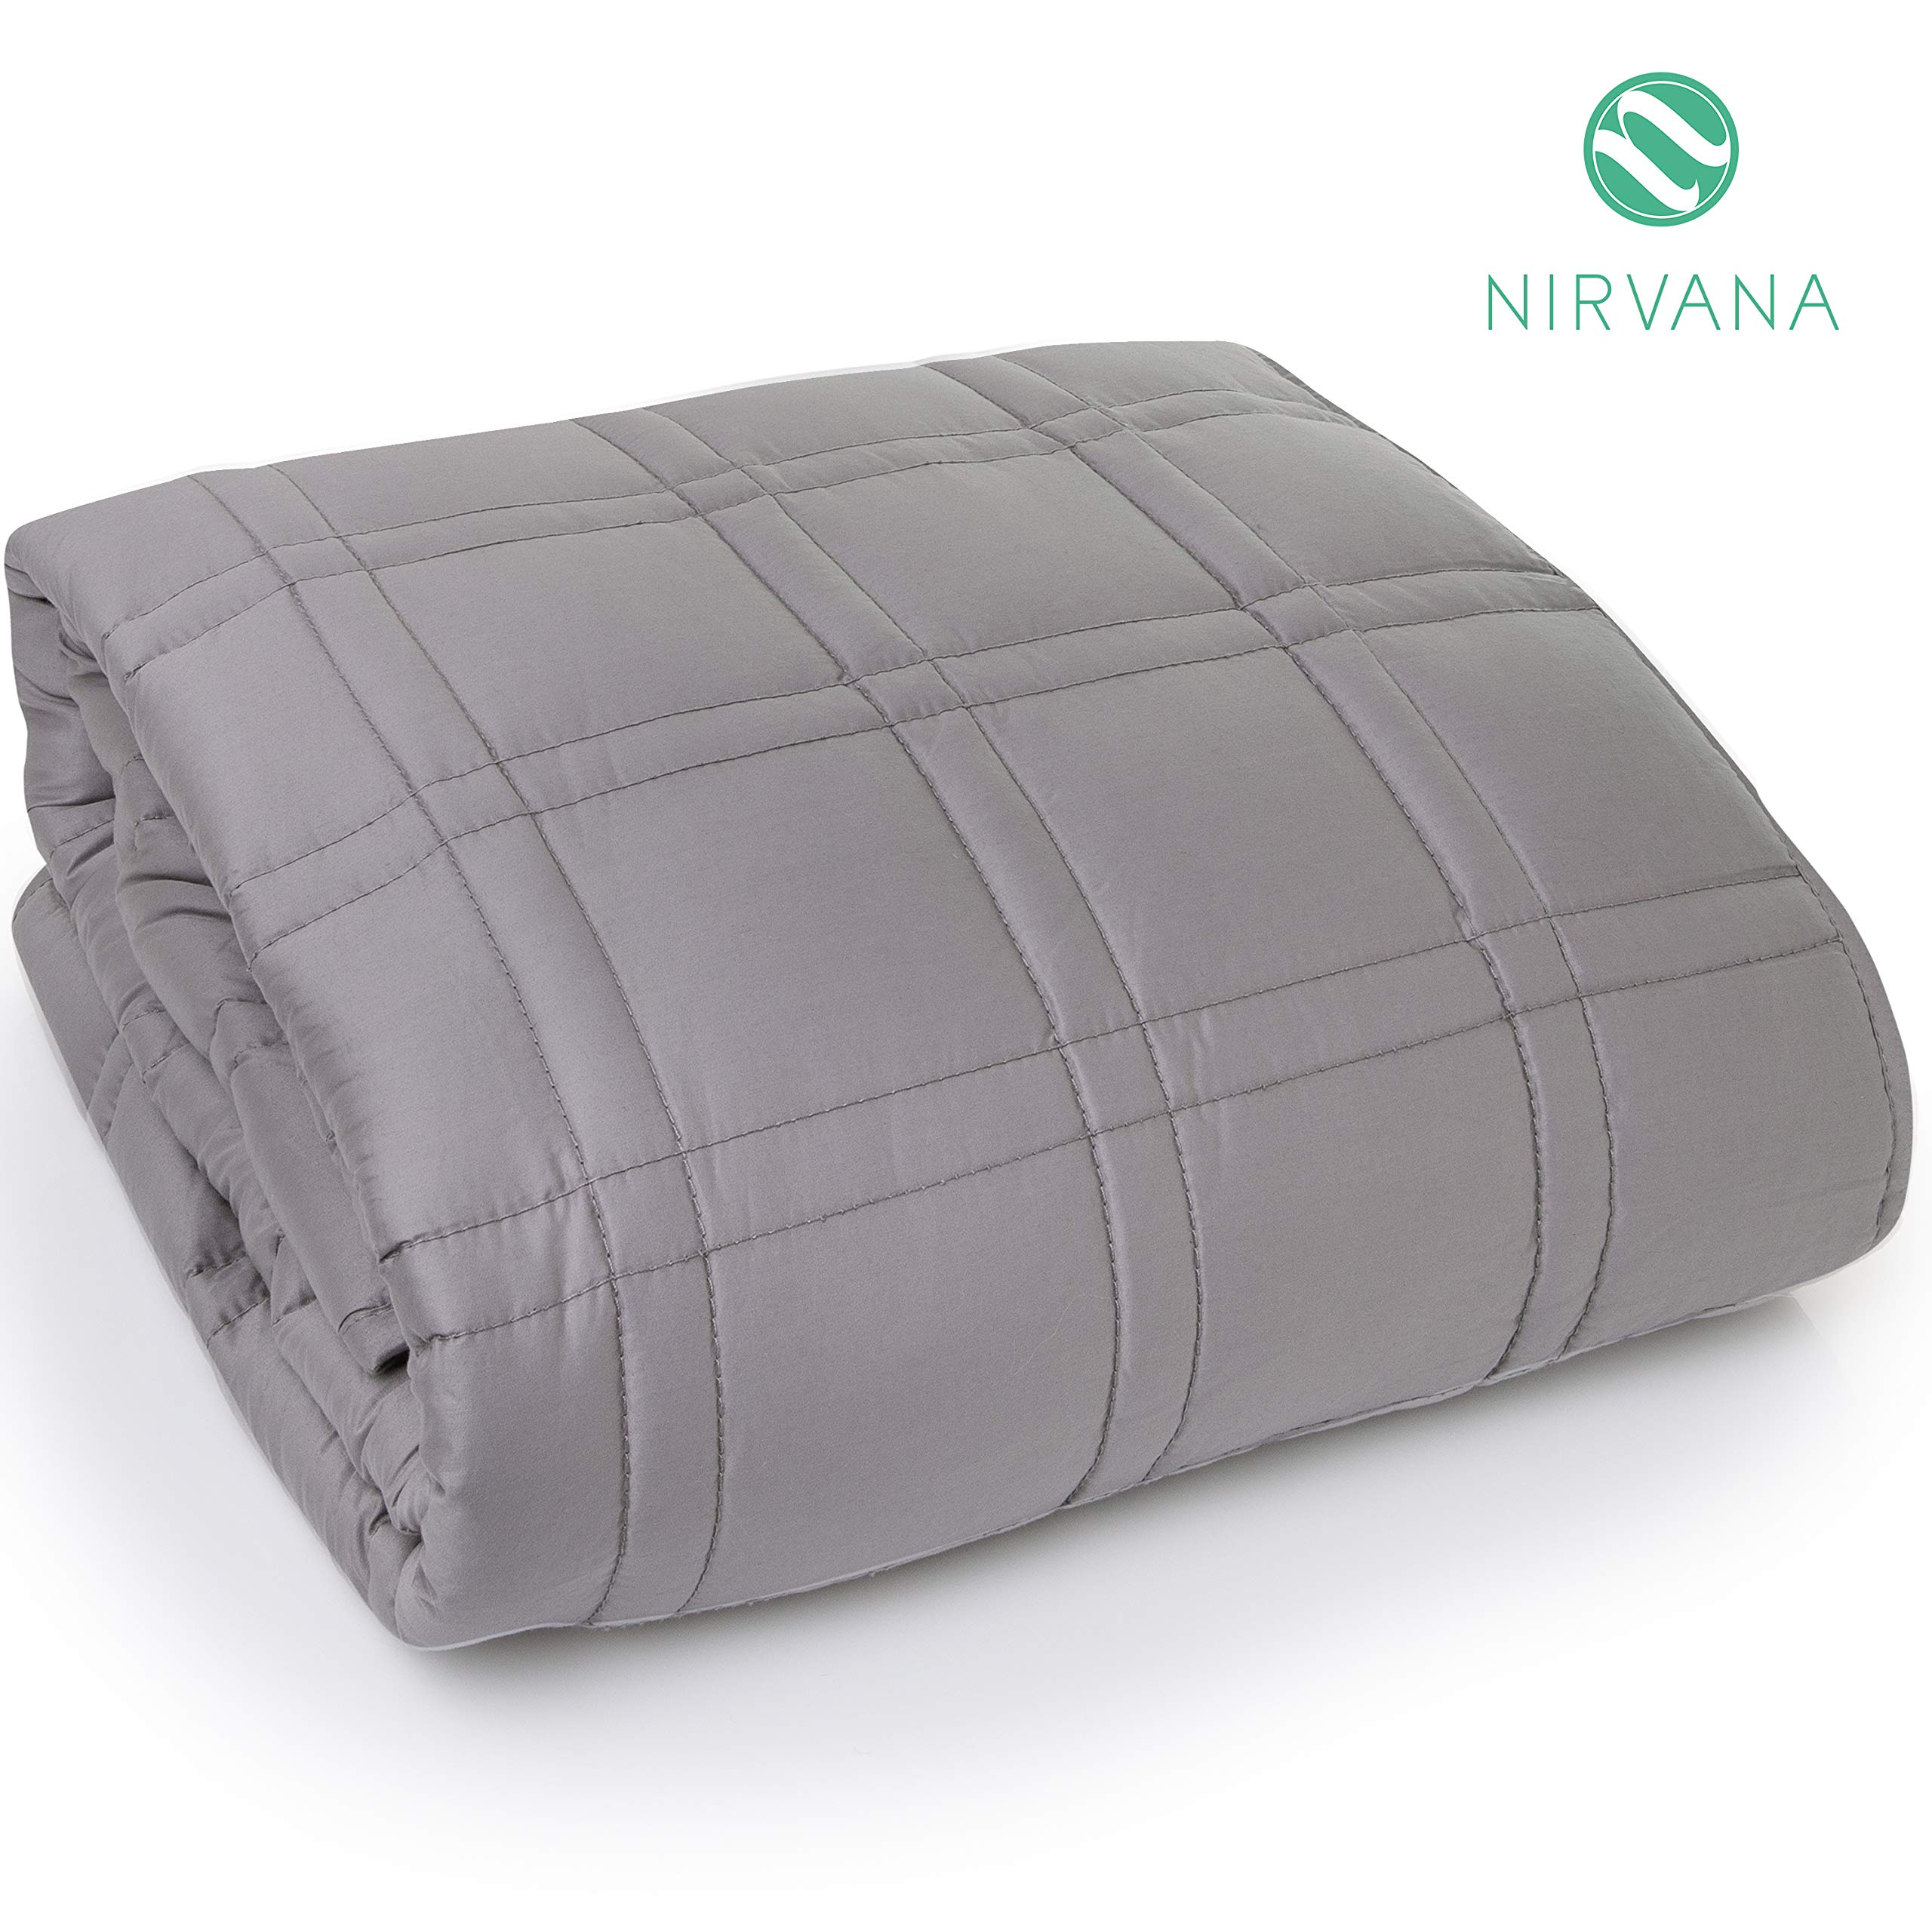 Nirvana Weighted Blanket for Adults & Kids   Natural Deep Sleep Aid & Stress Relief   All Natural Organic Cooling Cotton   Calming Anxiety Blanket   15 lbs   48x78